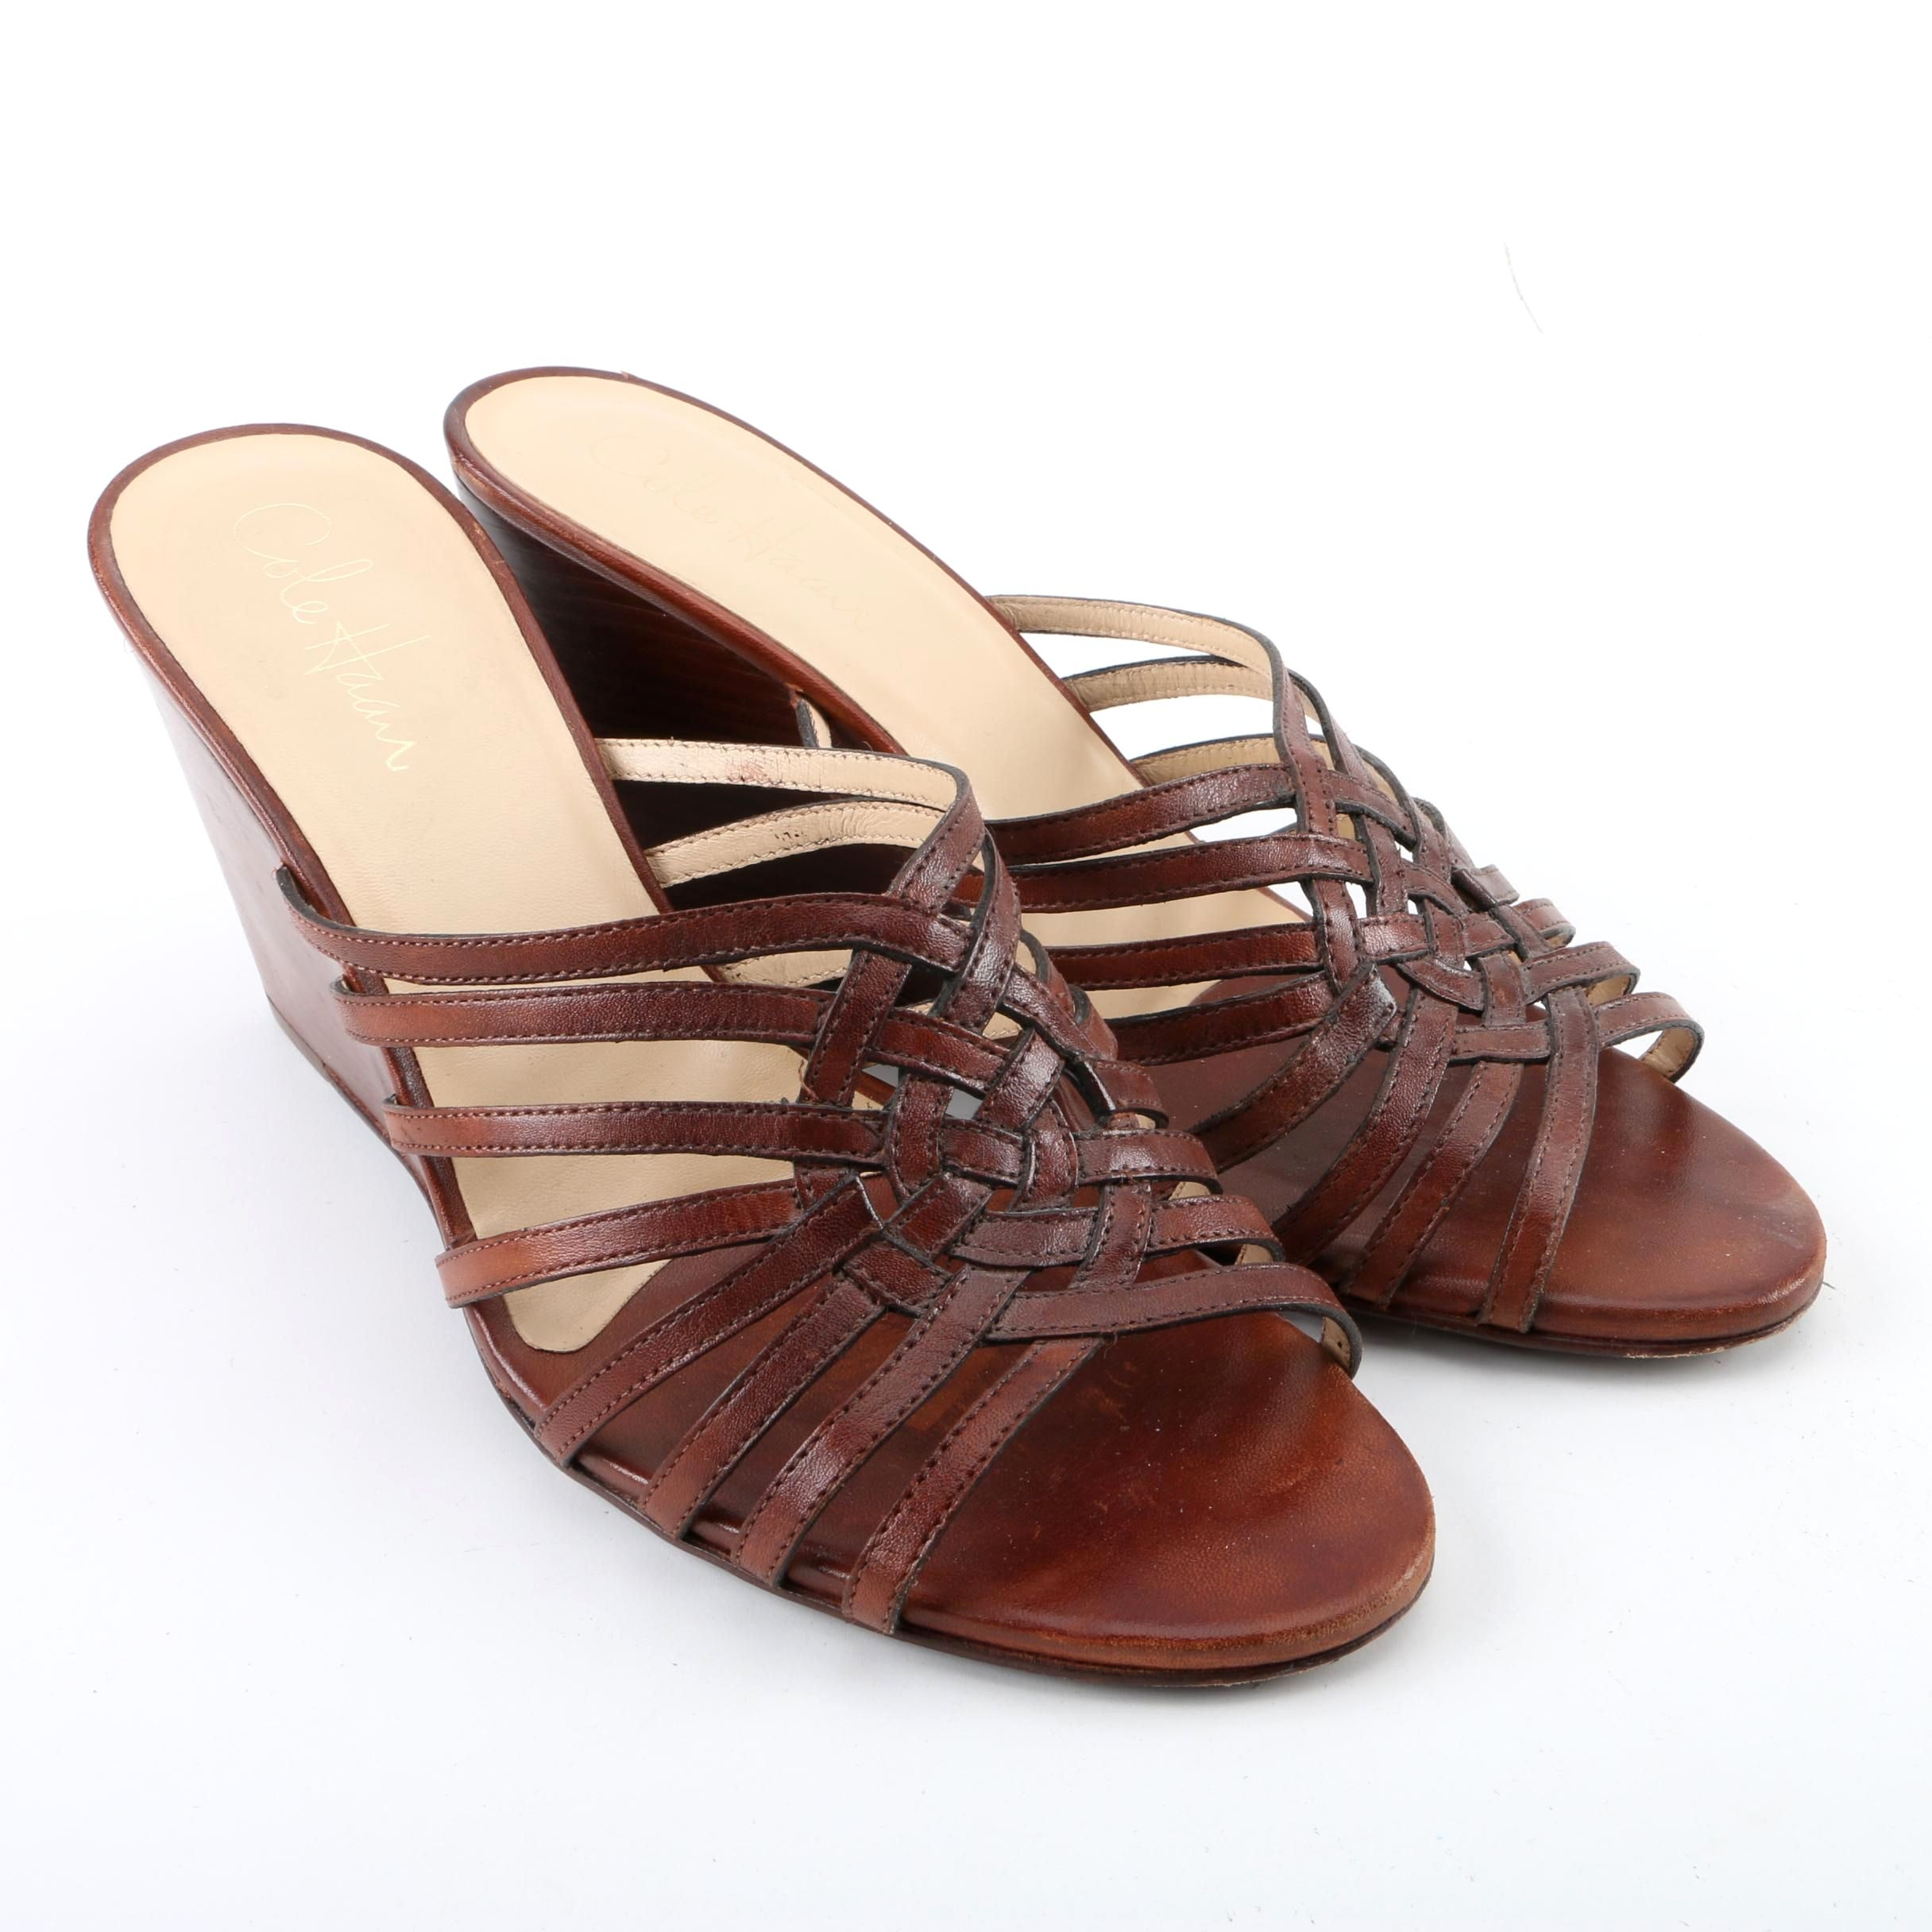 Women's Cole Haan Nike Air Brown Leather Wedge Sandals